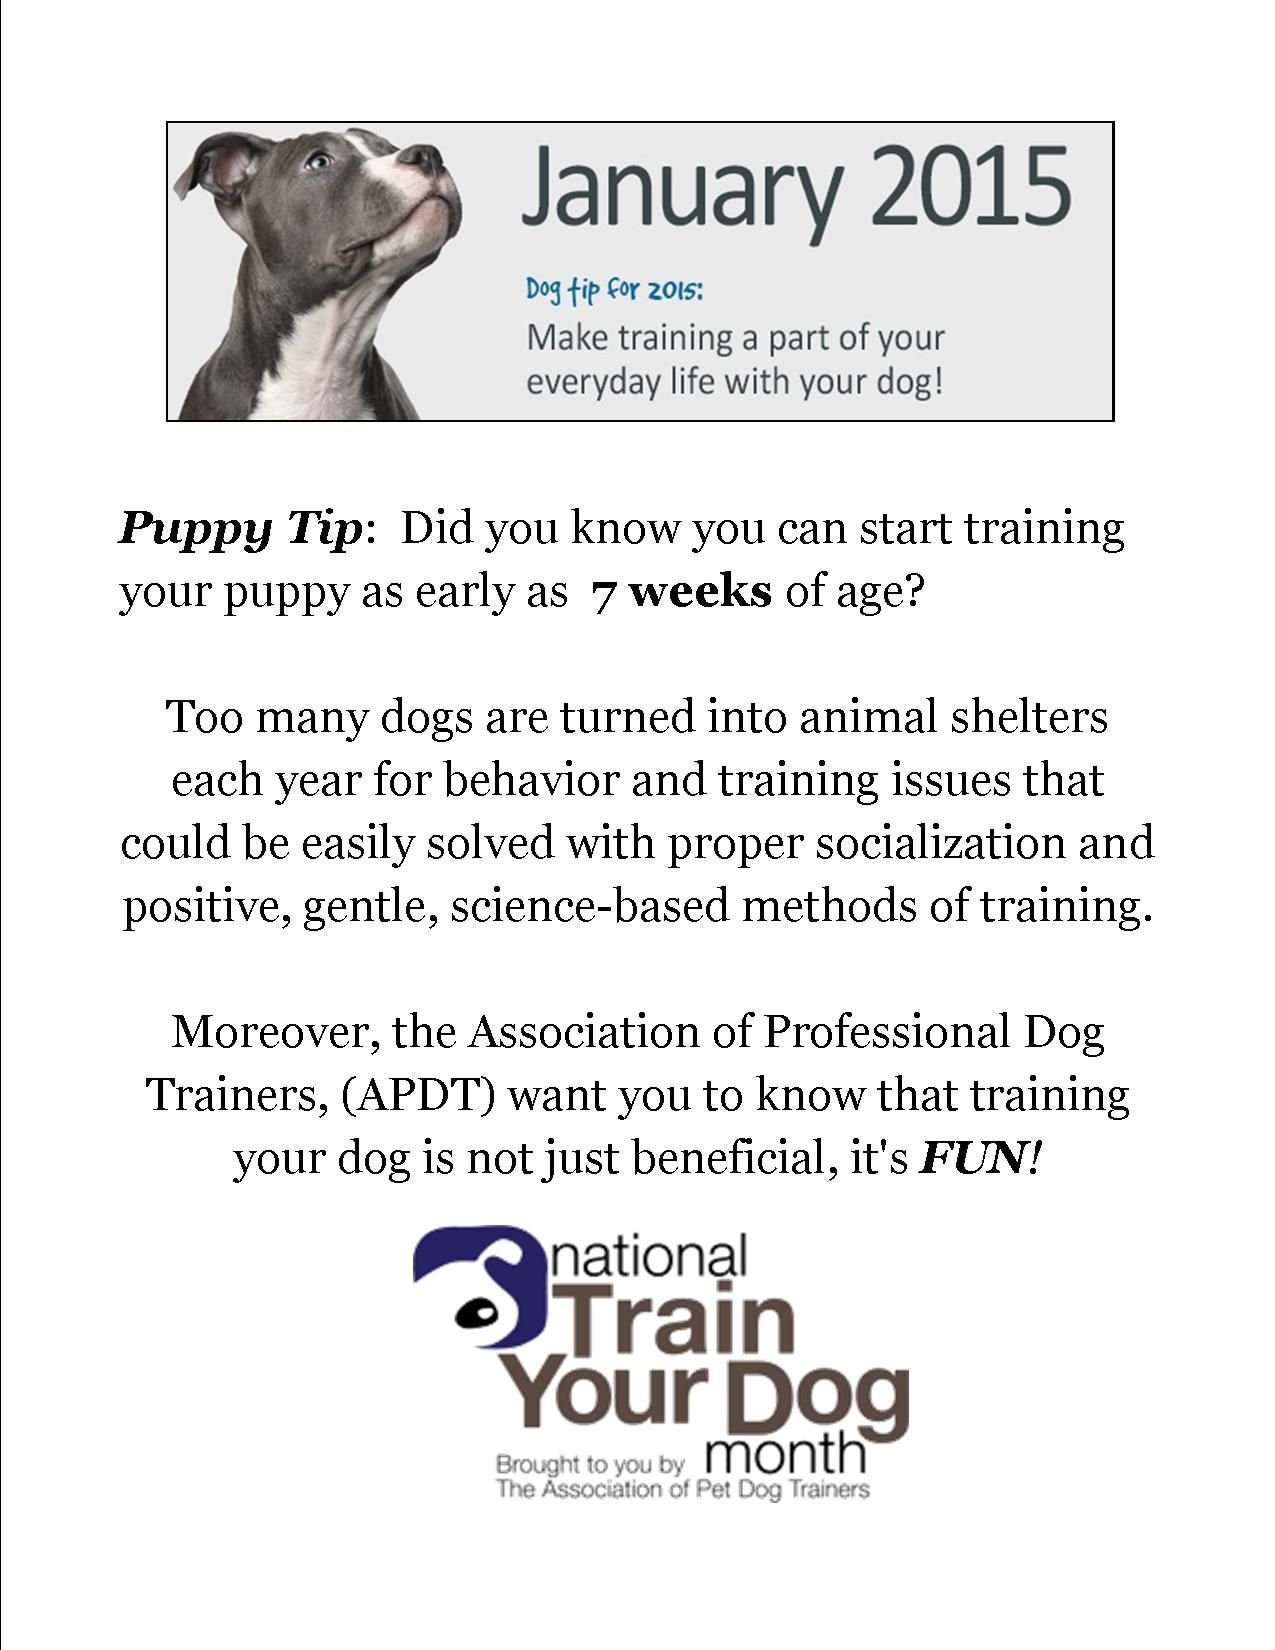 January Is National Train Your Dog Month Check Out The Training